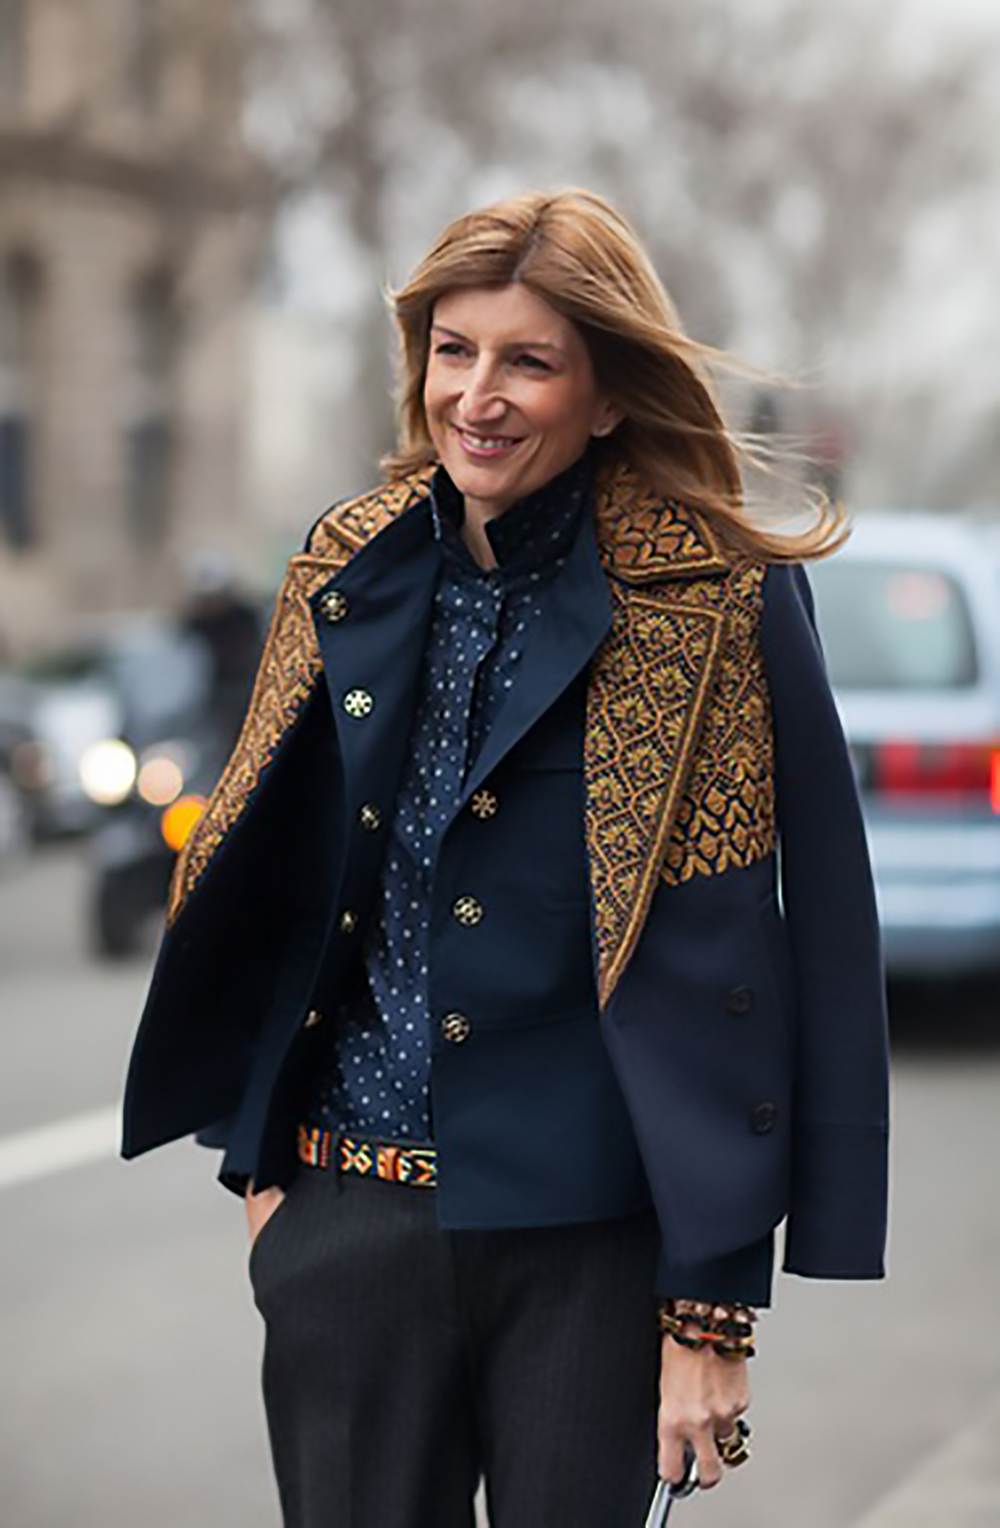 harpers bazaar paris street style 2013 190 of 192 jackets over shoulders 1500.jpg